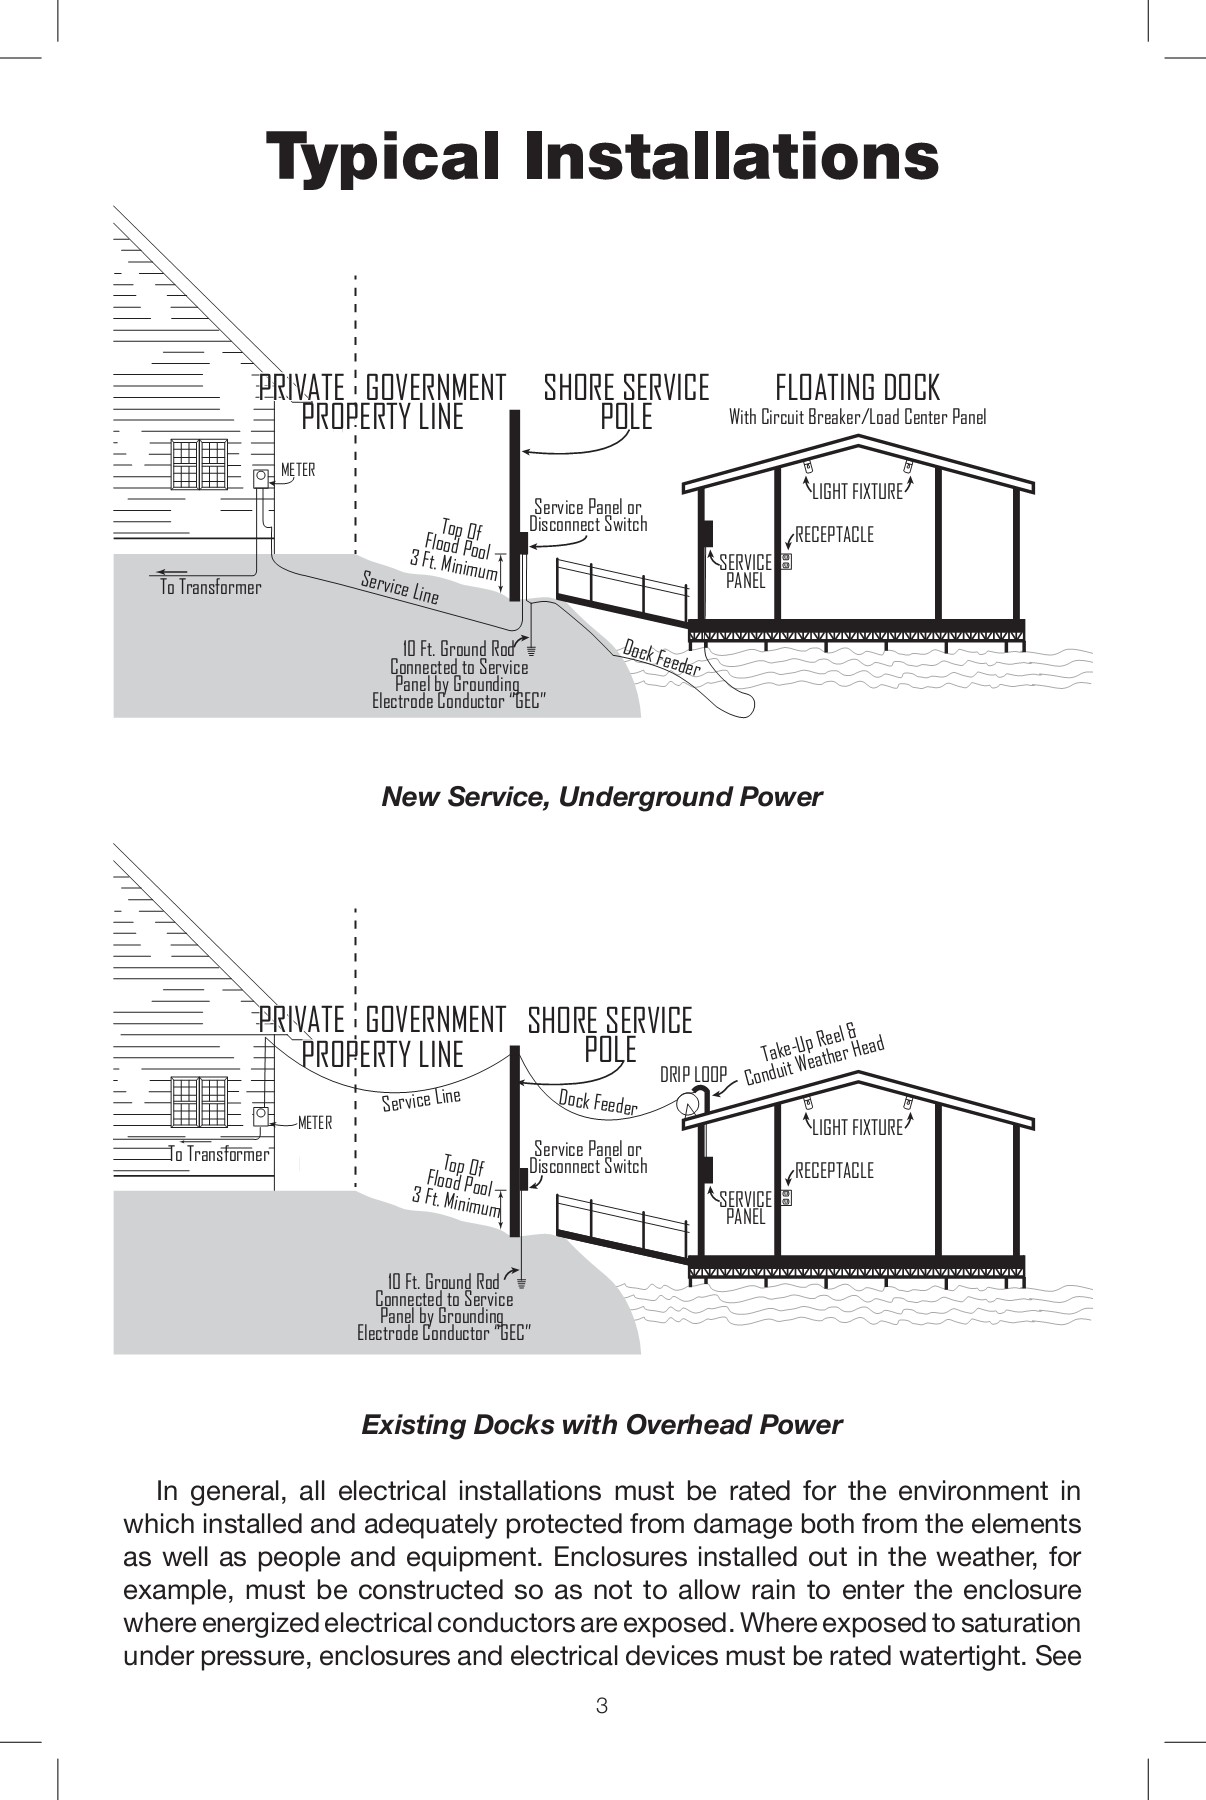 hight resolution of dock electrical systems 03 june 2013 pages 1 12 text version anyflip